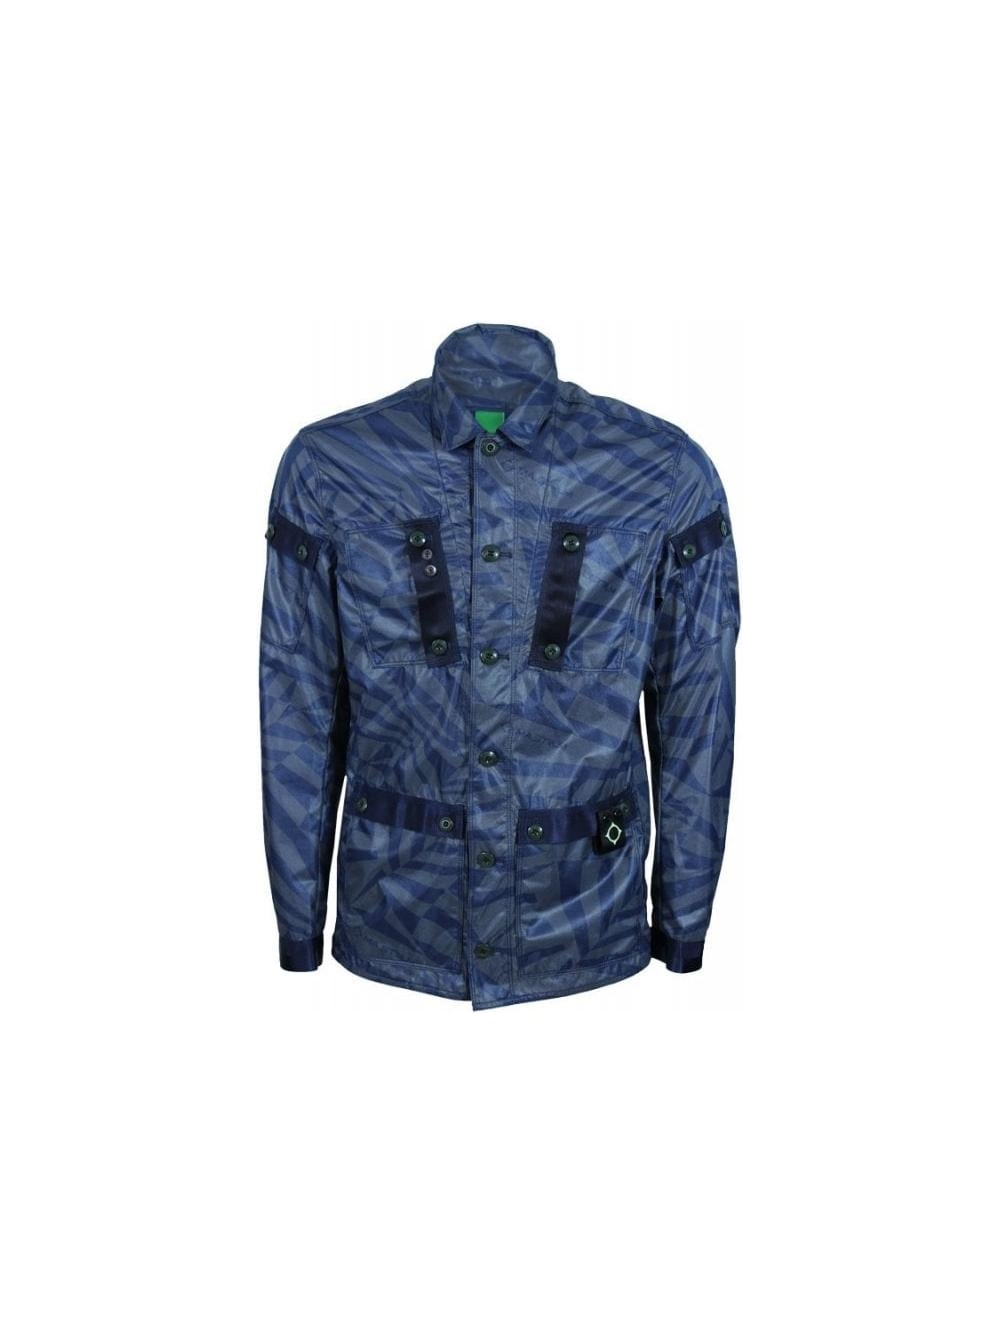 412a67722604a Ma.Strum Field Outershirt in Dazzle Camo - Northern Threads